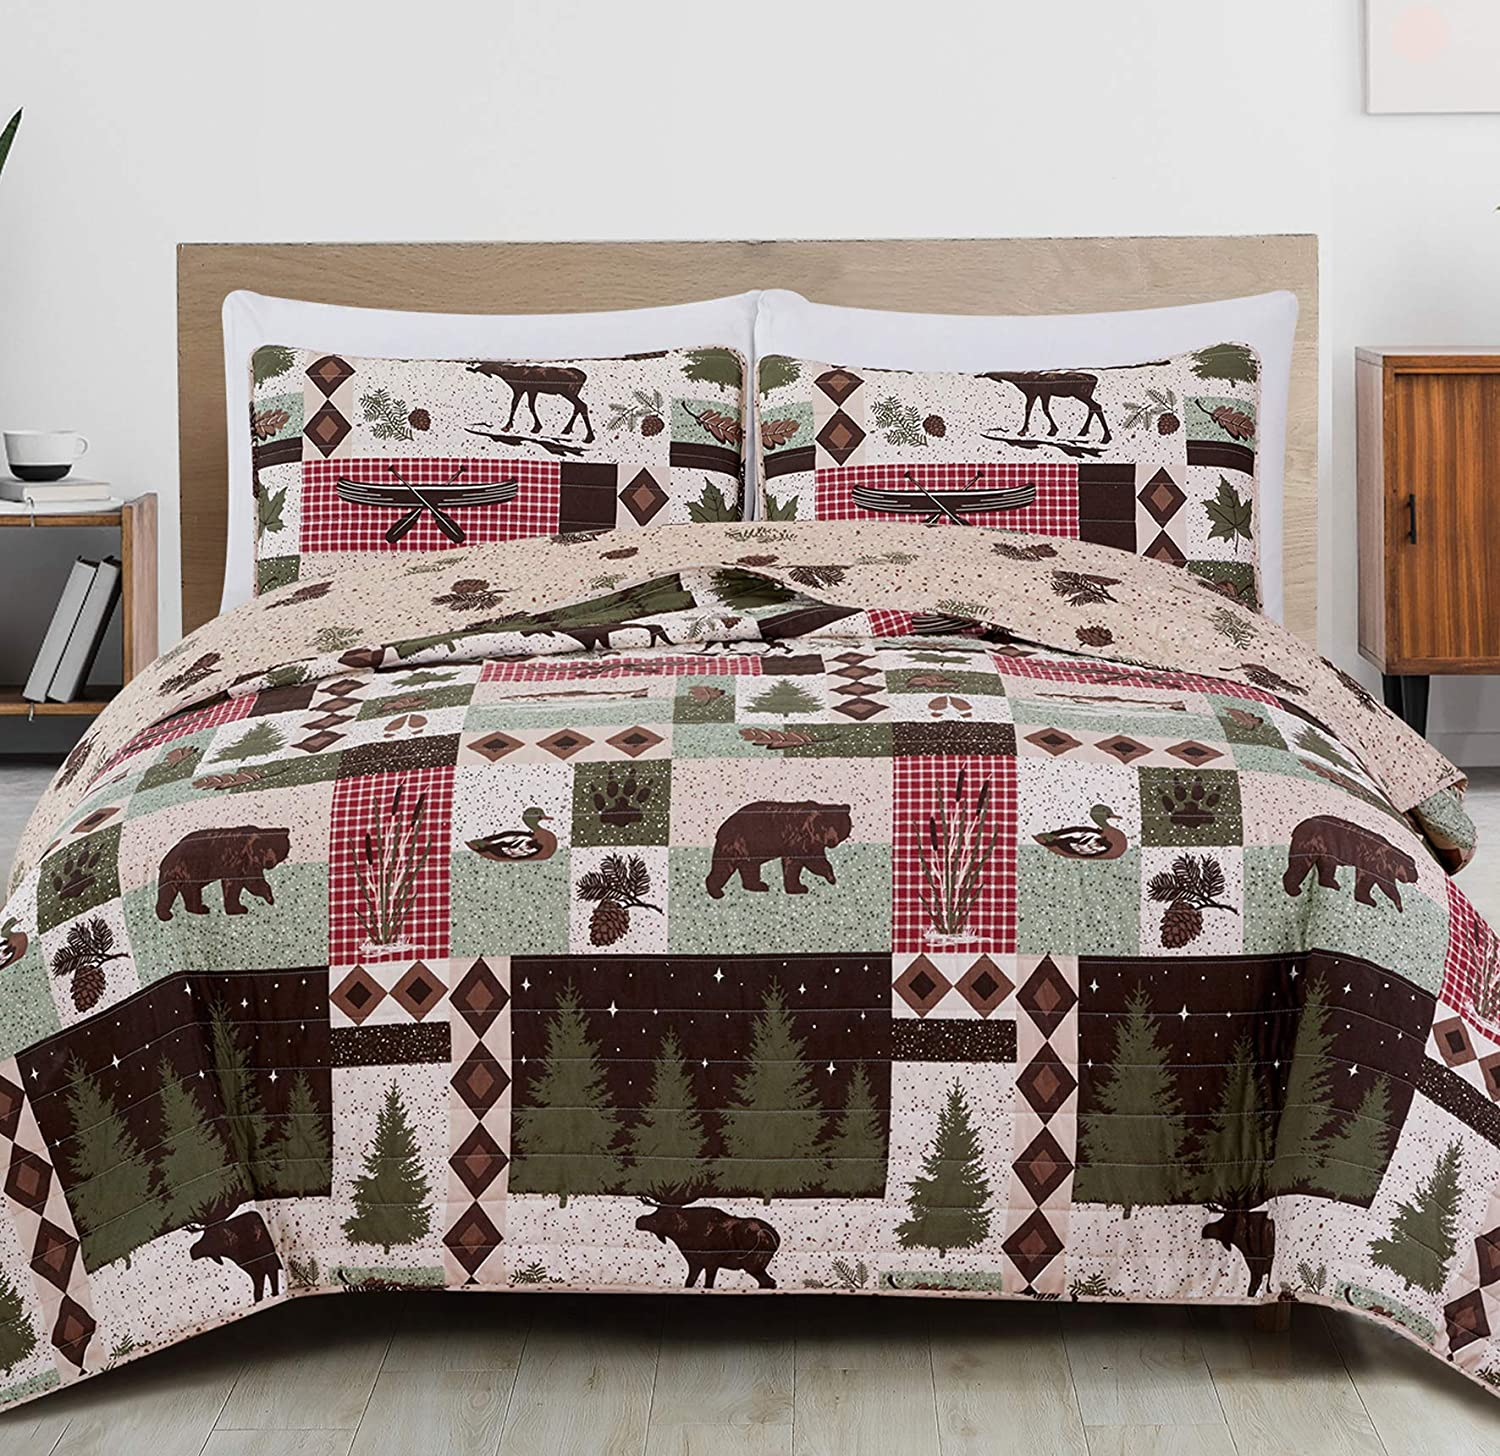 Great Bay Home 3-Piece Reversible Rustic Lodge Bedspread Full/Queen Size Quilt with 2 Shams. All-Season Quilt Set. Wilder Collection (Full/Queen)